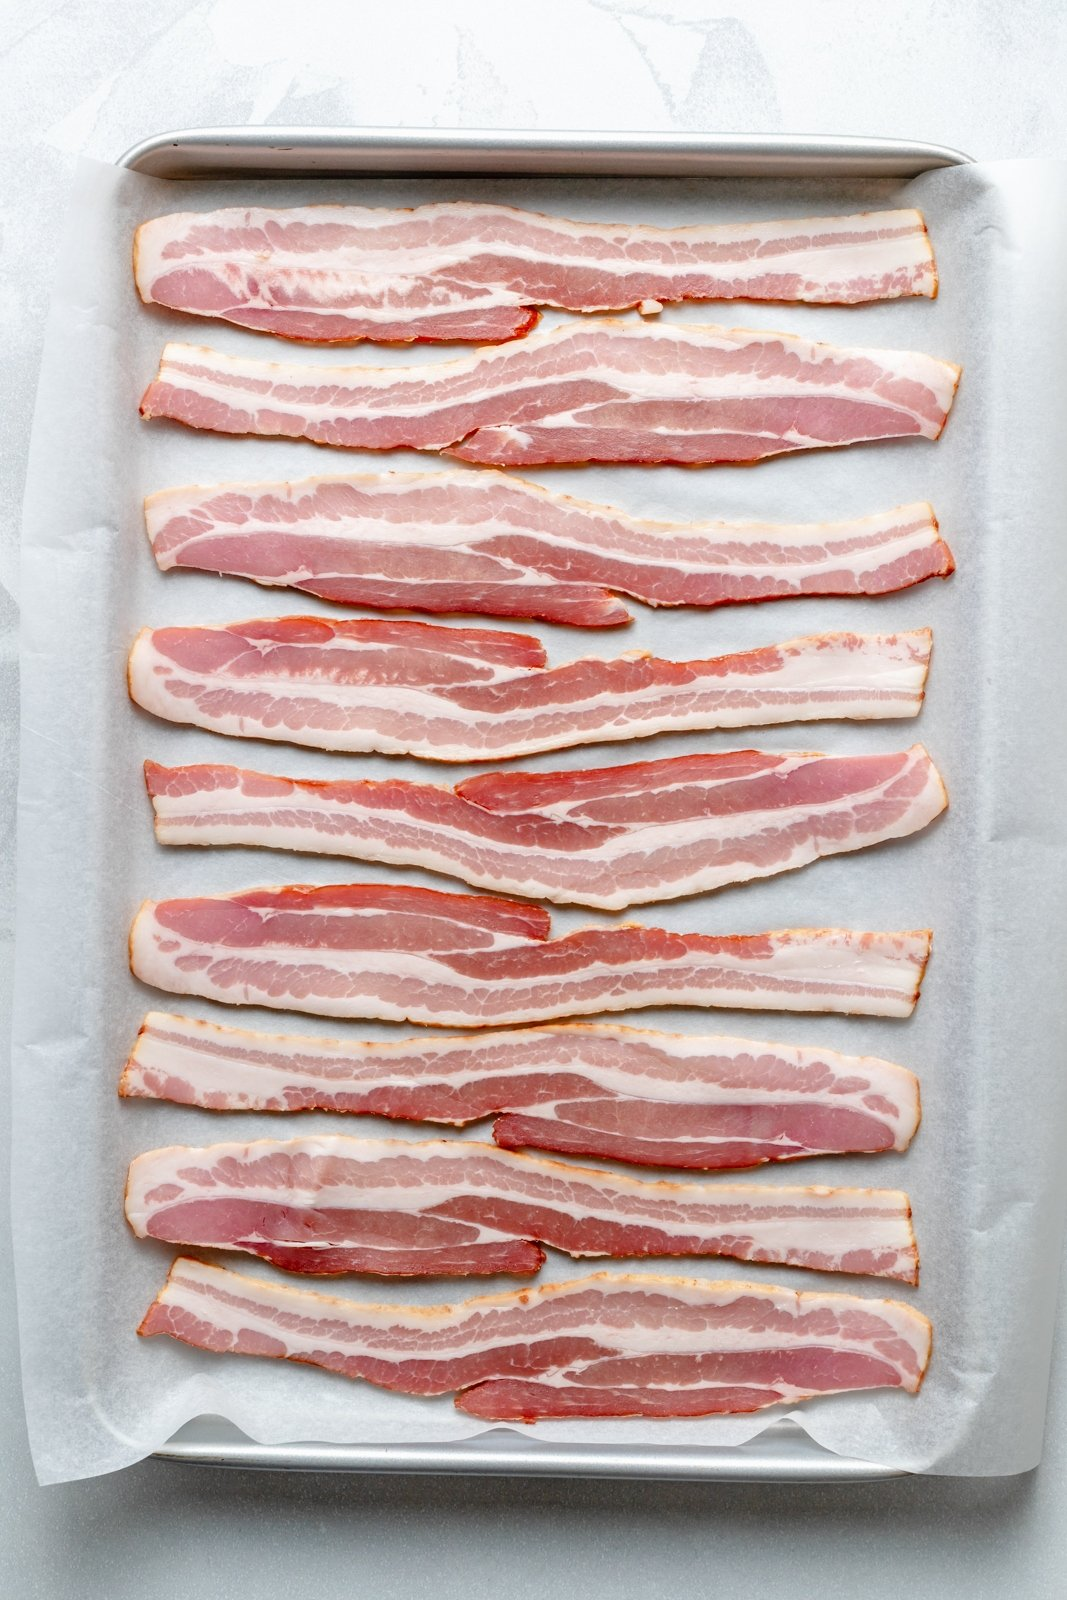 uncooked bacon on a baking sheet